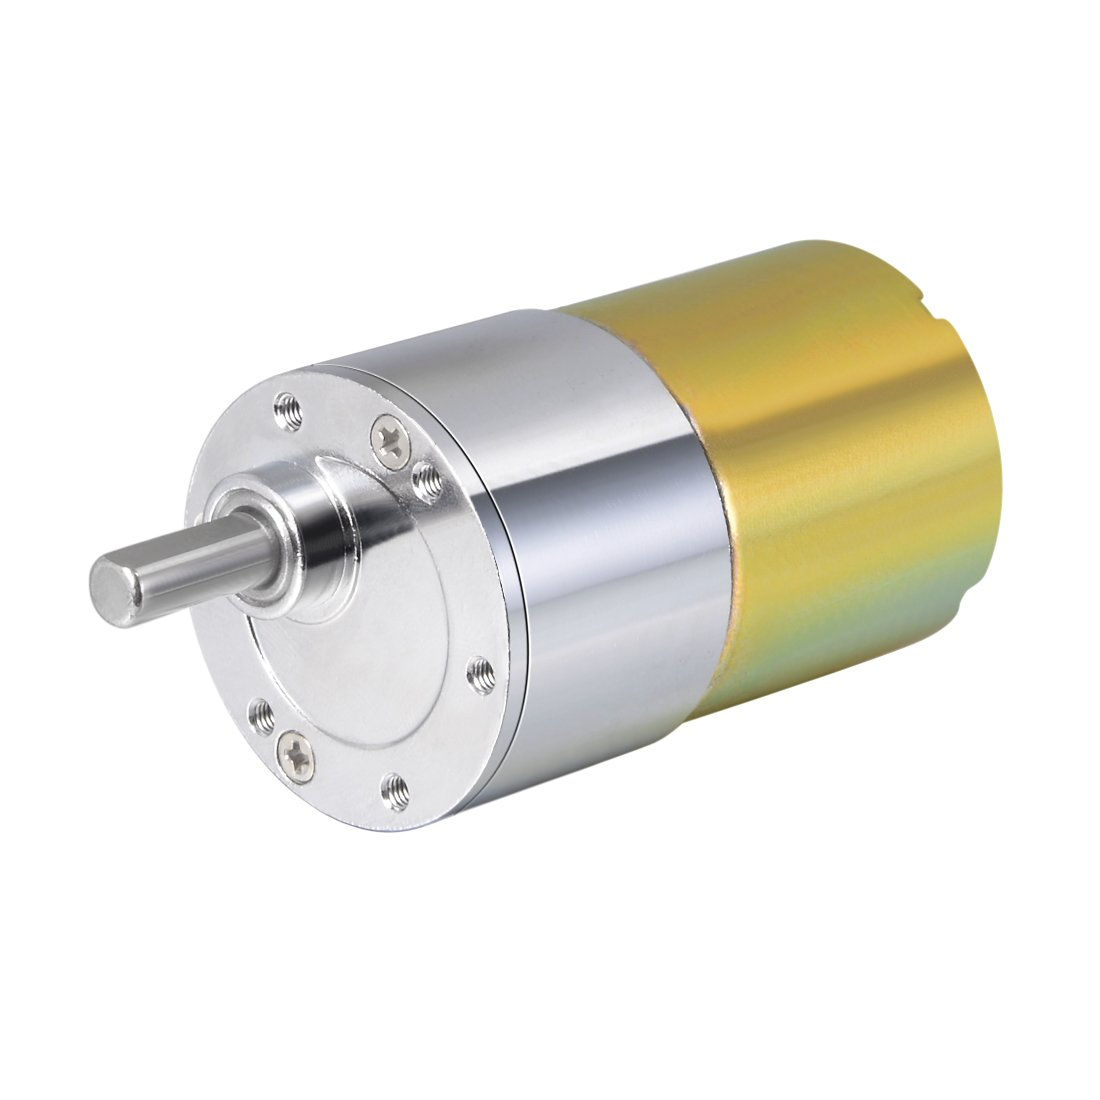 uxcell 12V DC 300 RPM Gear Motor High Torque Electric Reduction Gearbox Eccentric Output Shaft